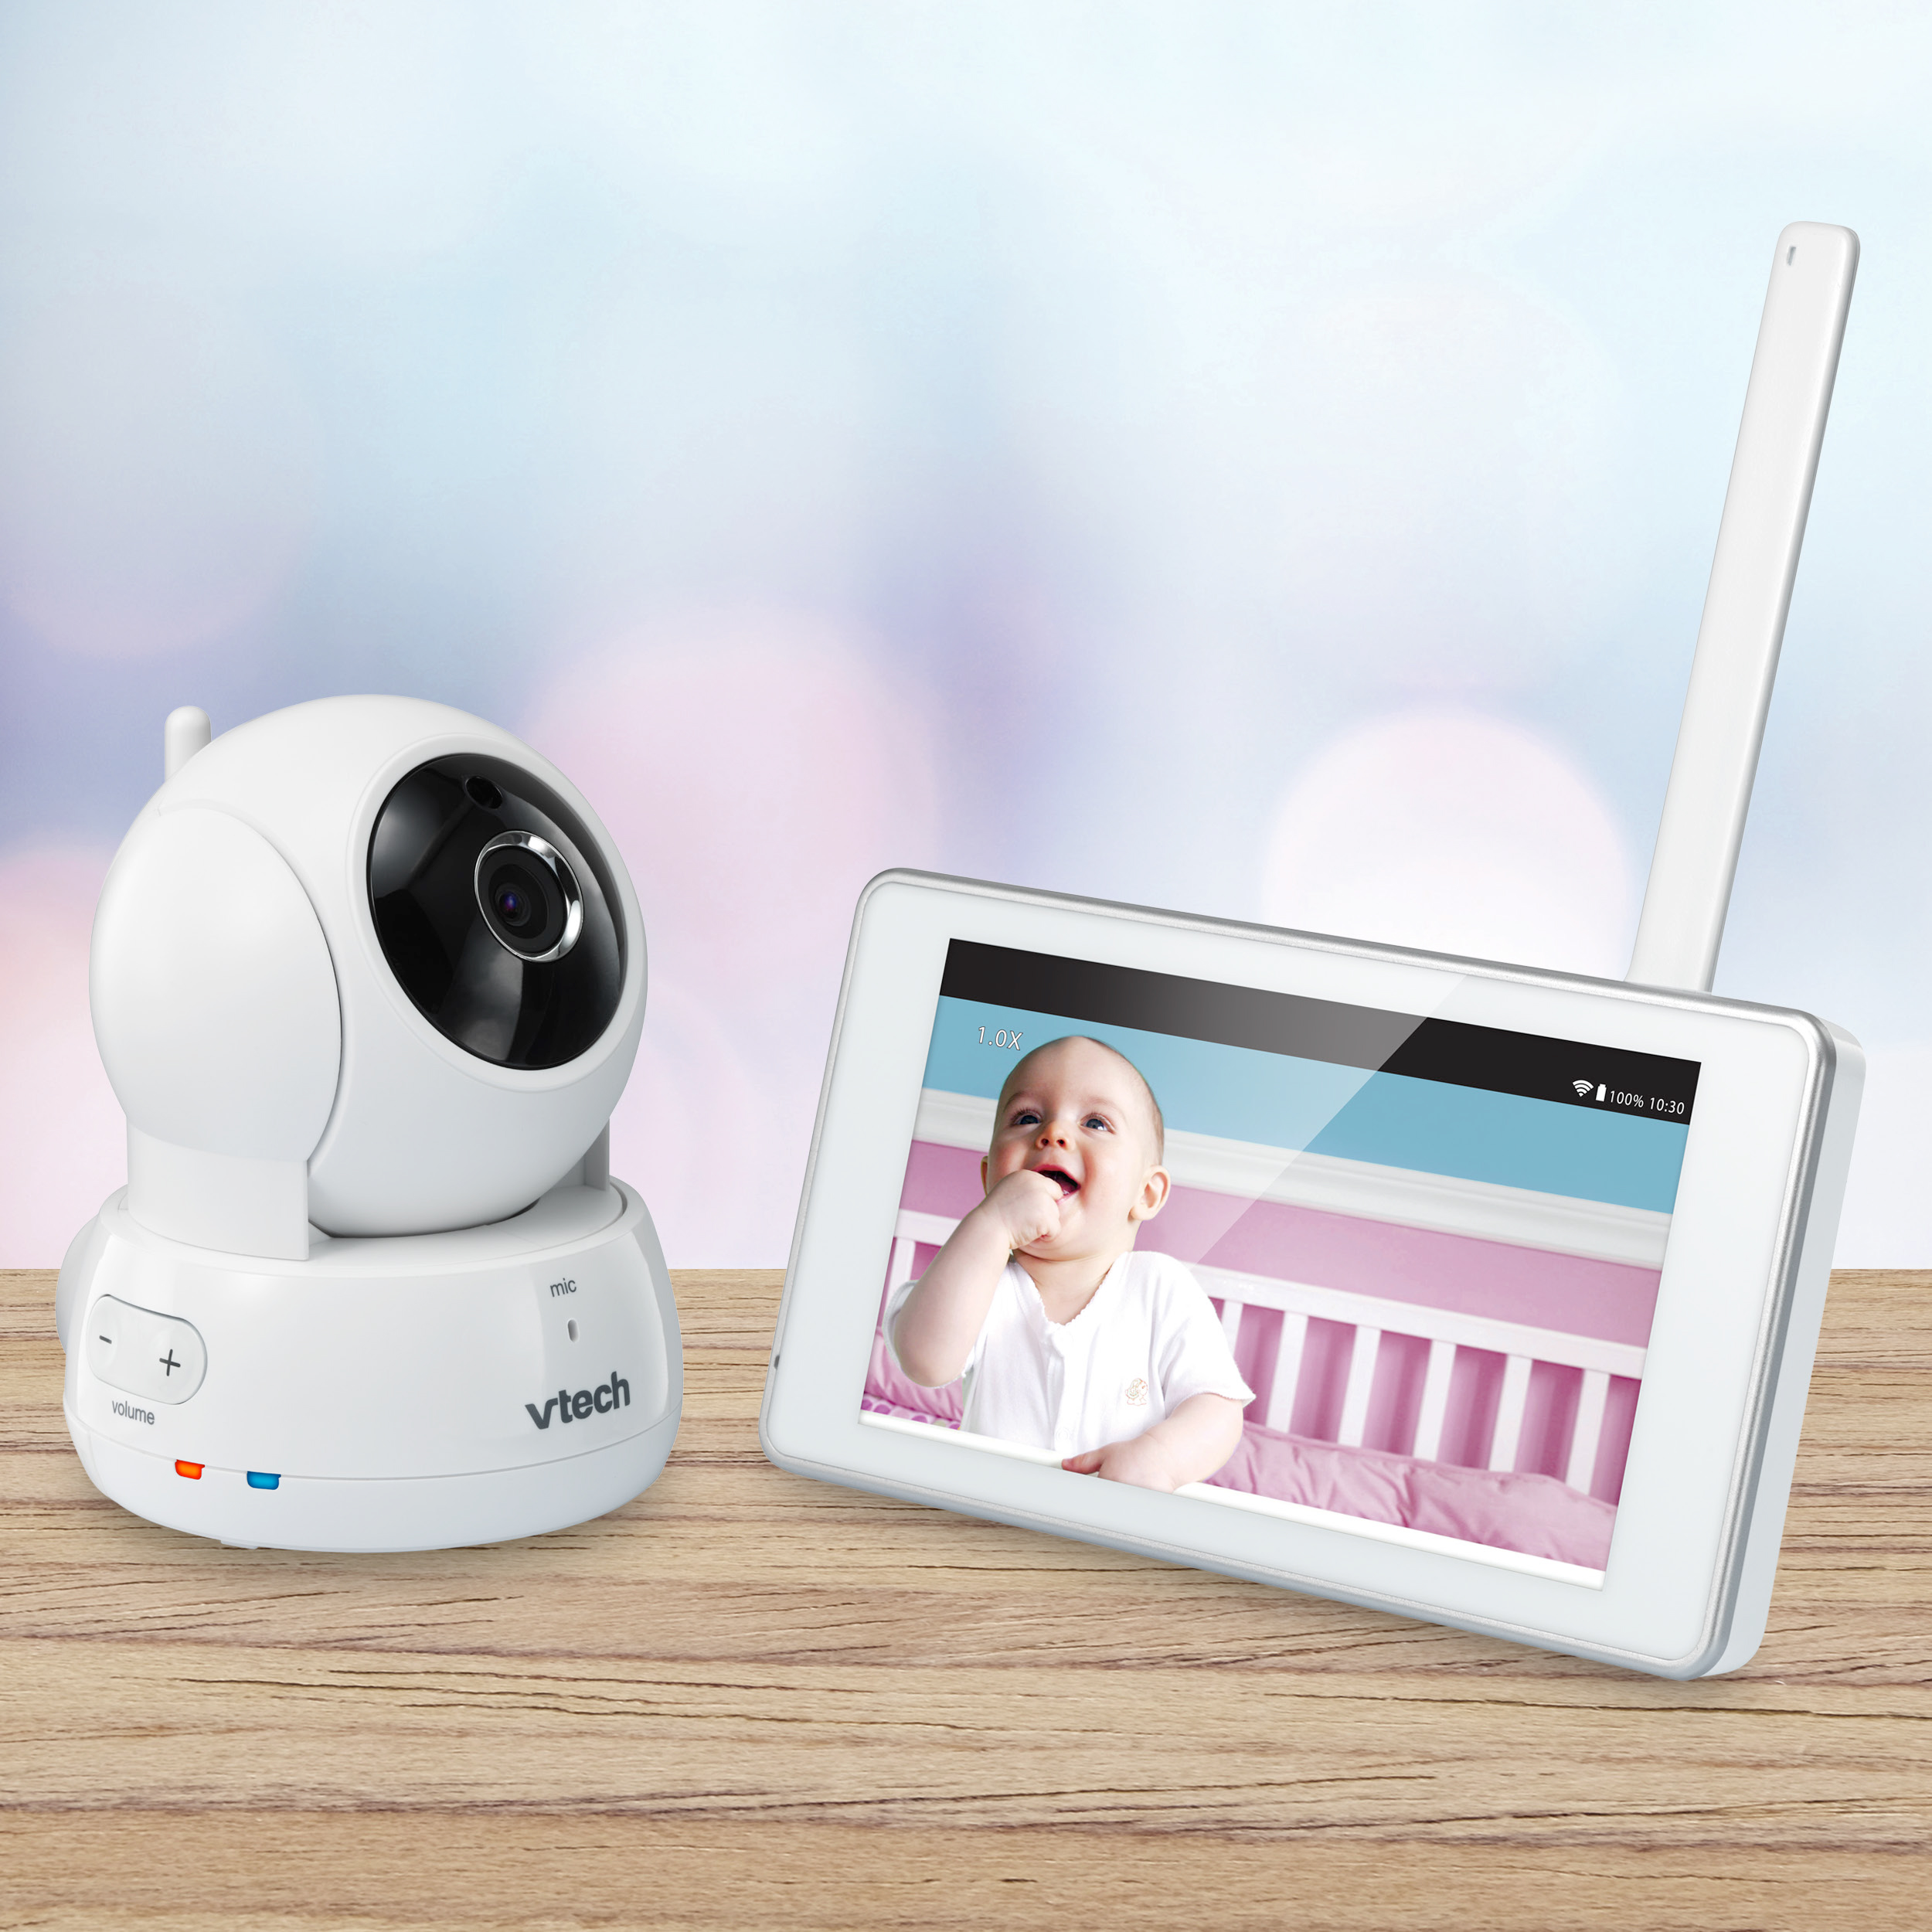 VTech VM991, Wi-Fi Video Baby Monitor, Remote Access, Pan & Tilt Camera